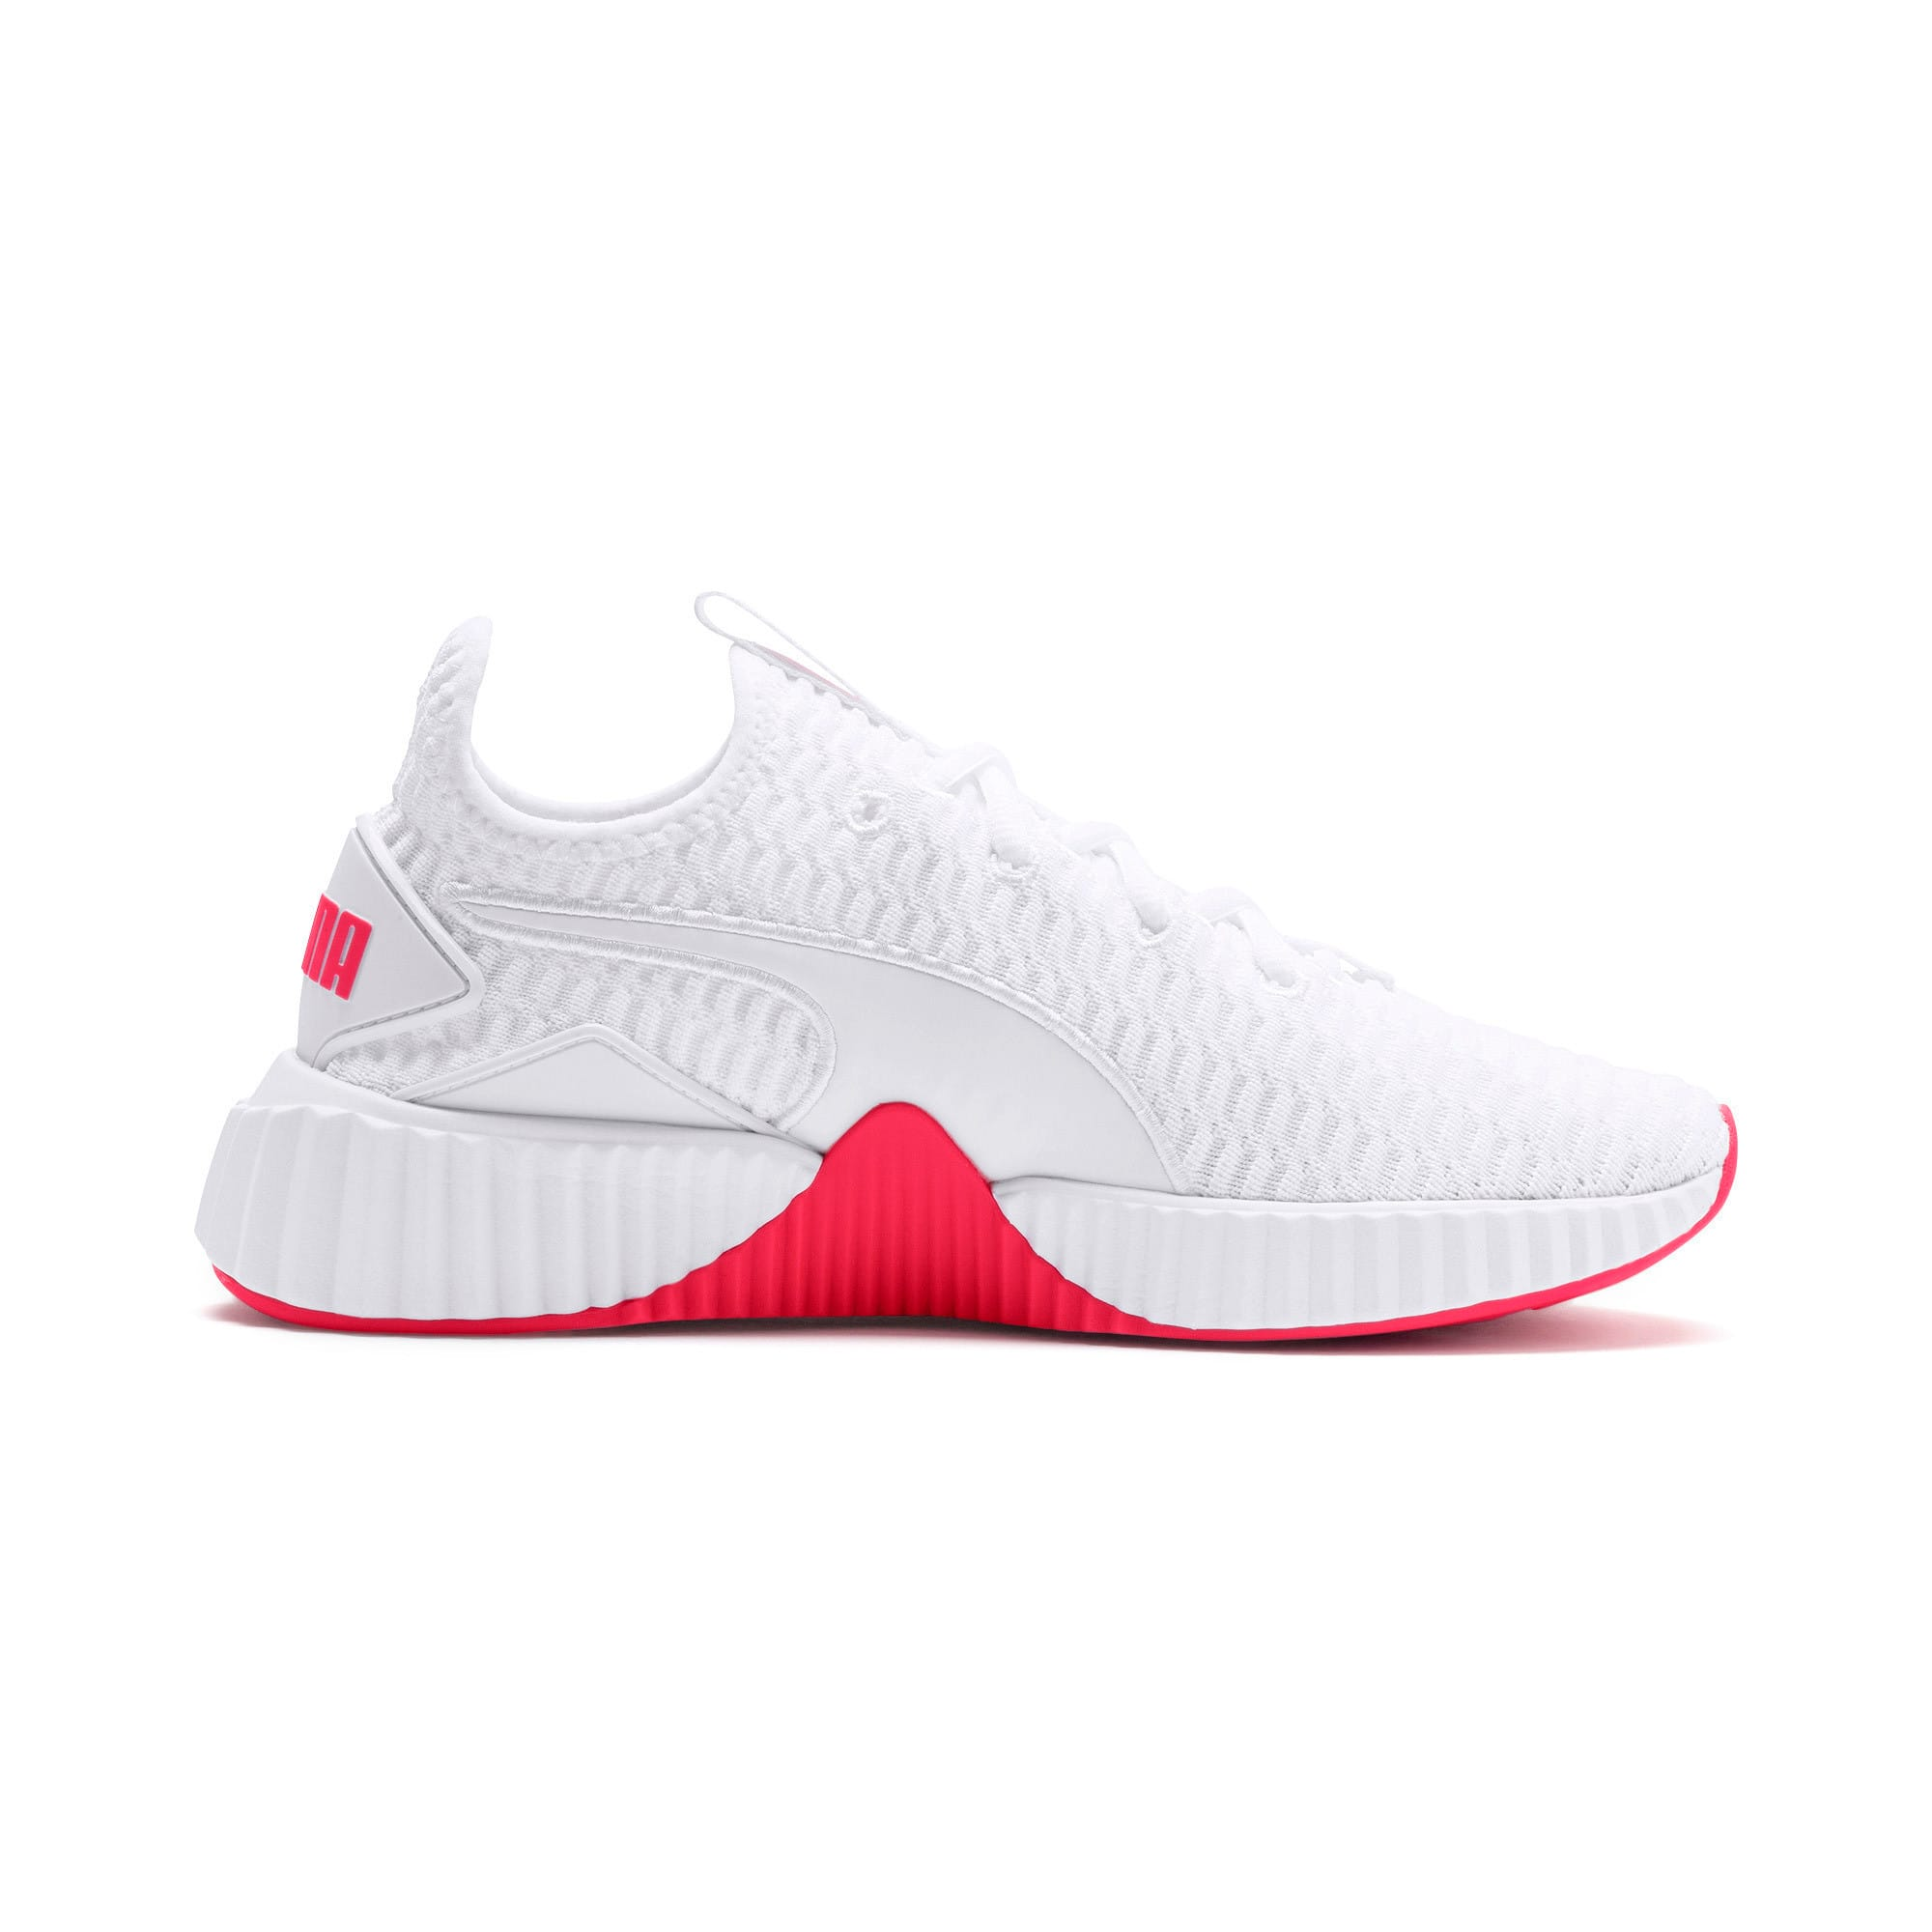 Thumbnail 7 of Defy Women's Trainers, Puma White-Pink Alert, medium-IND